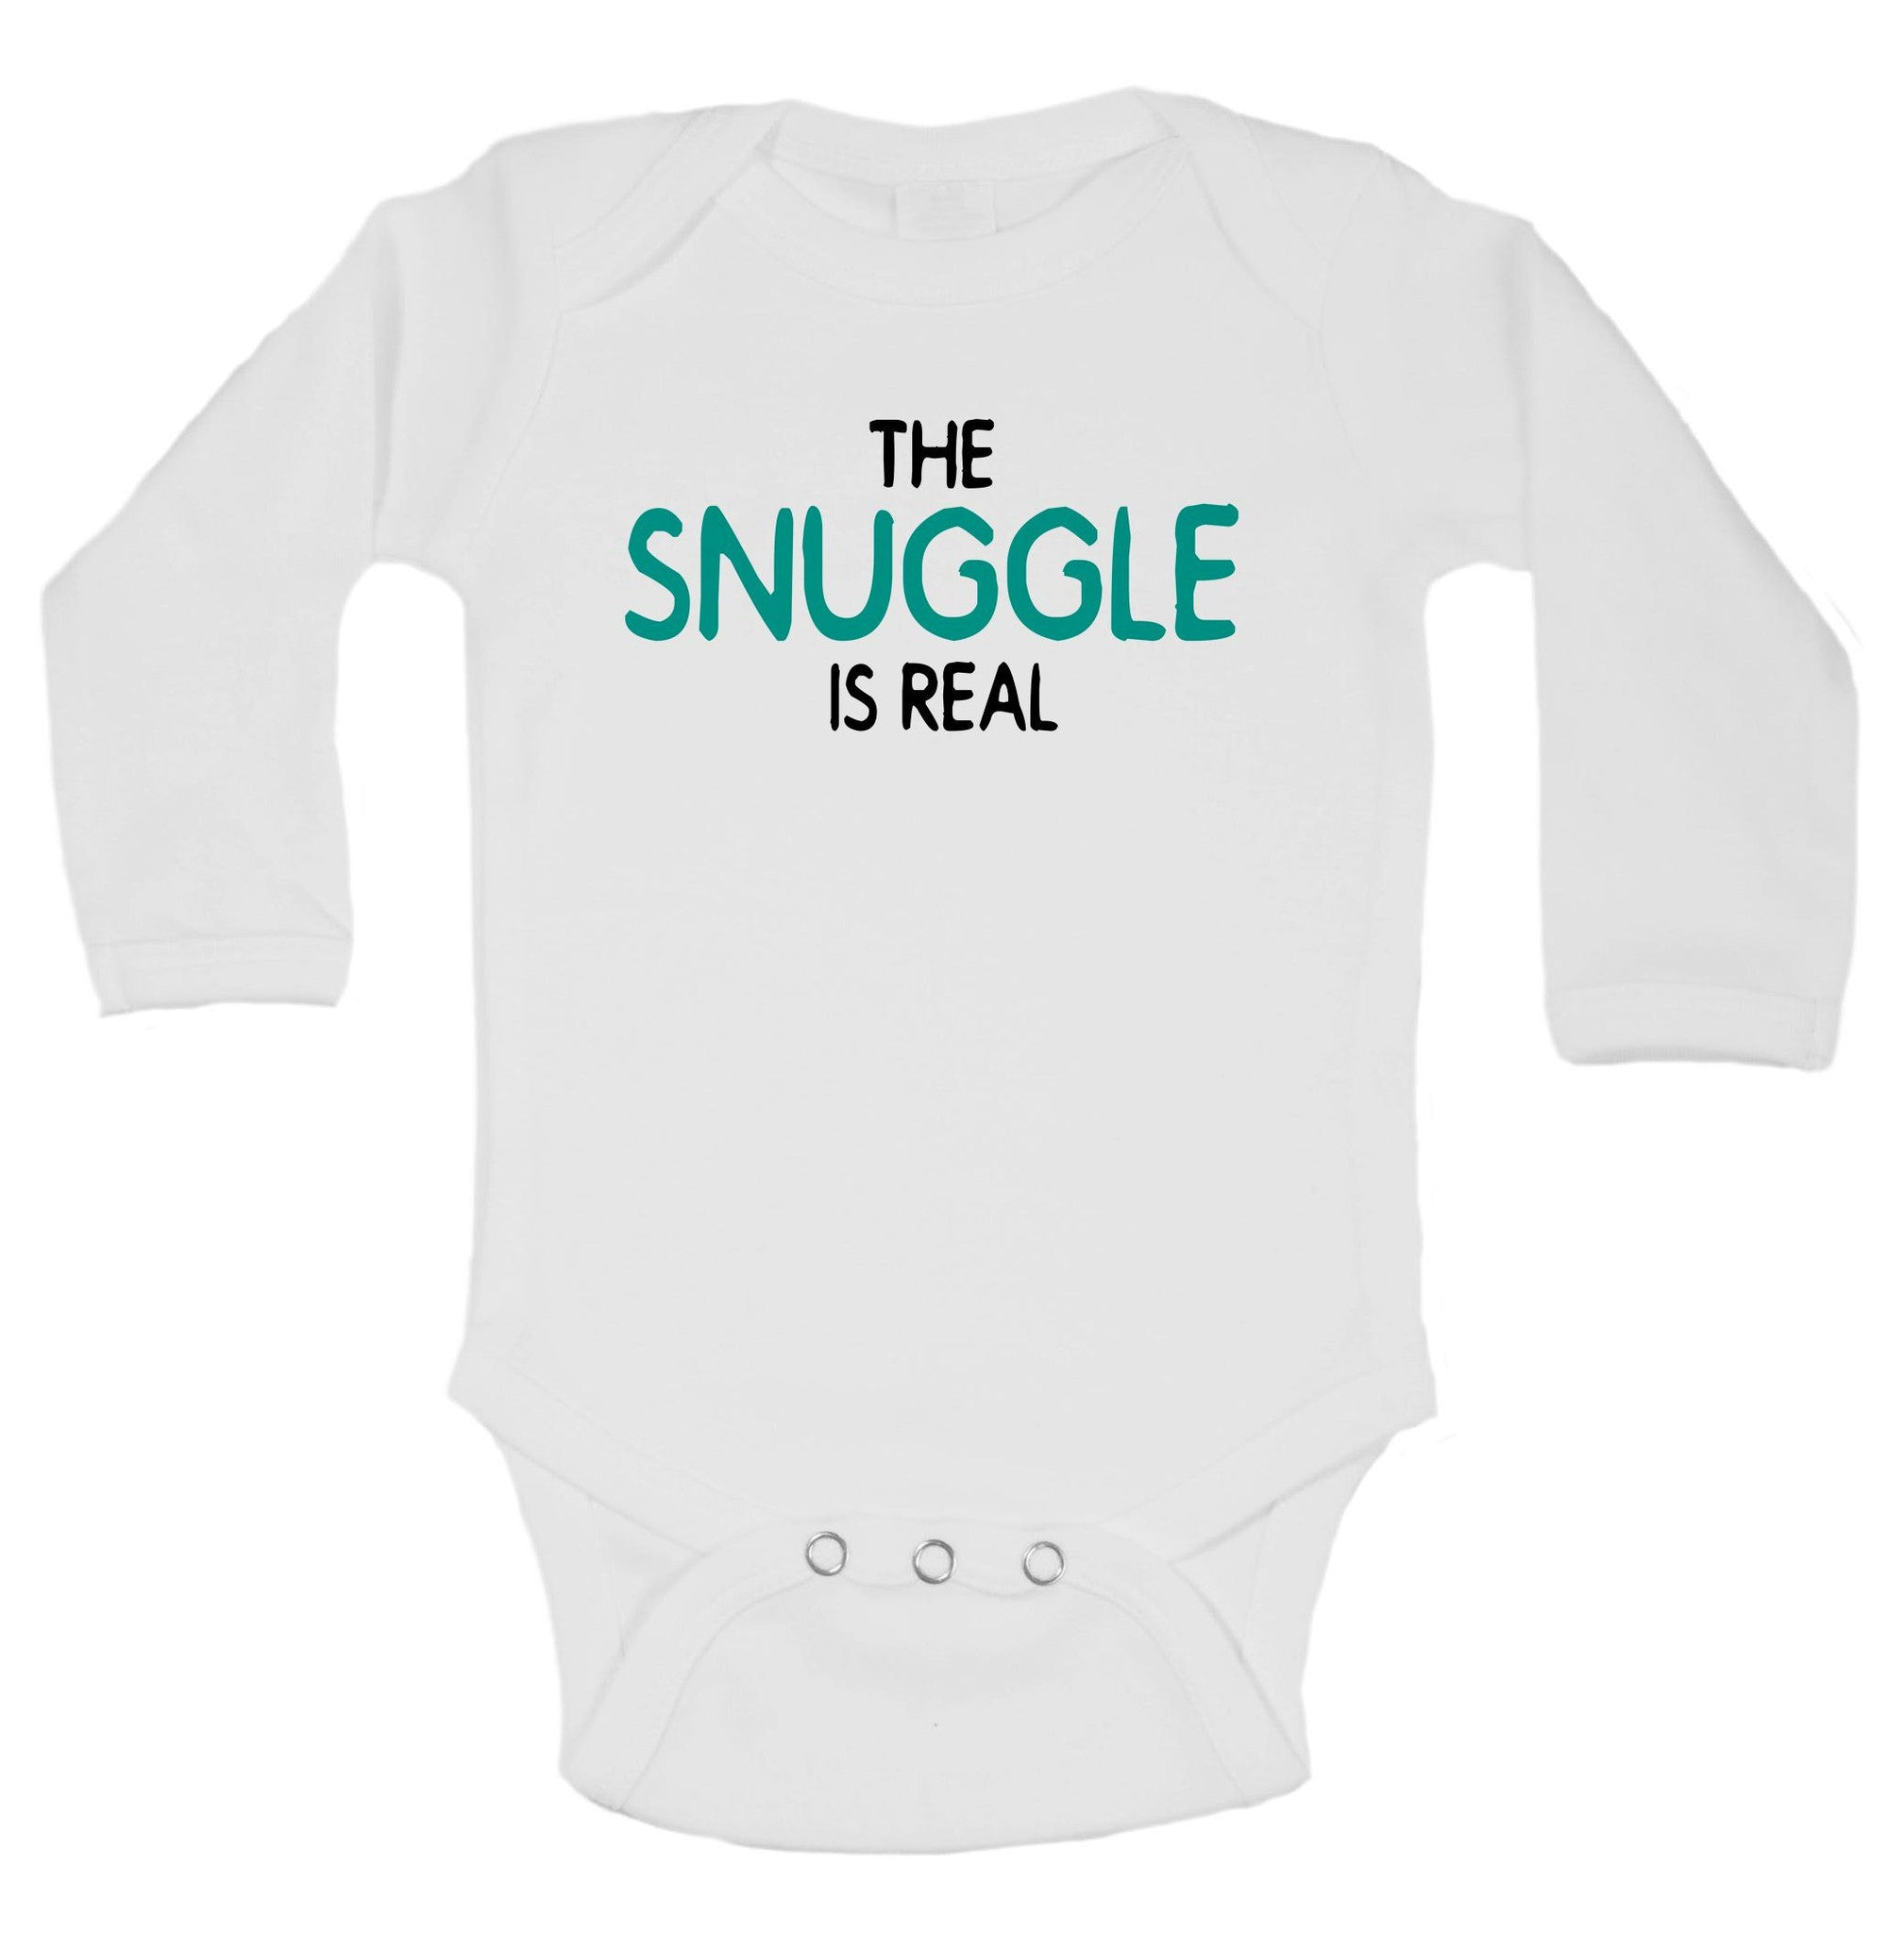 The Snuggle Is Real Funny Kids Onesie - B4 - Funny Shirts Tank Tops Burnouts and Triblends  - 1